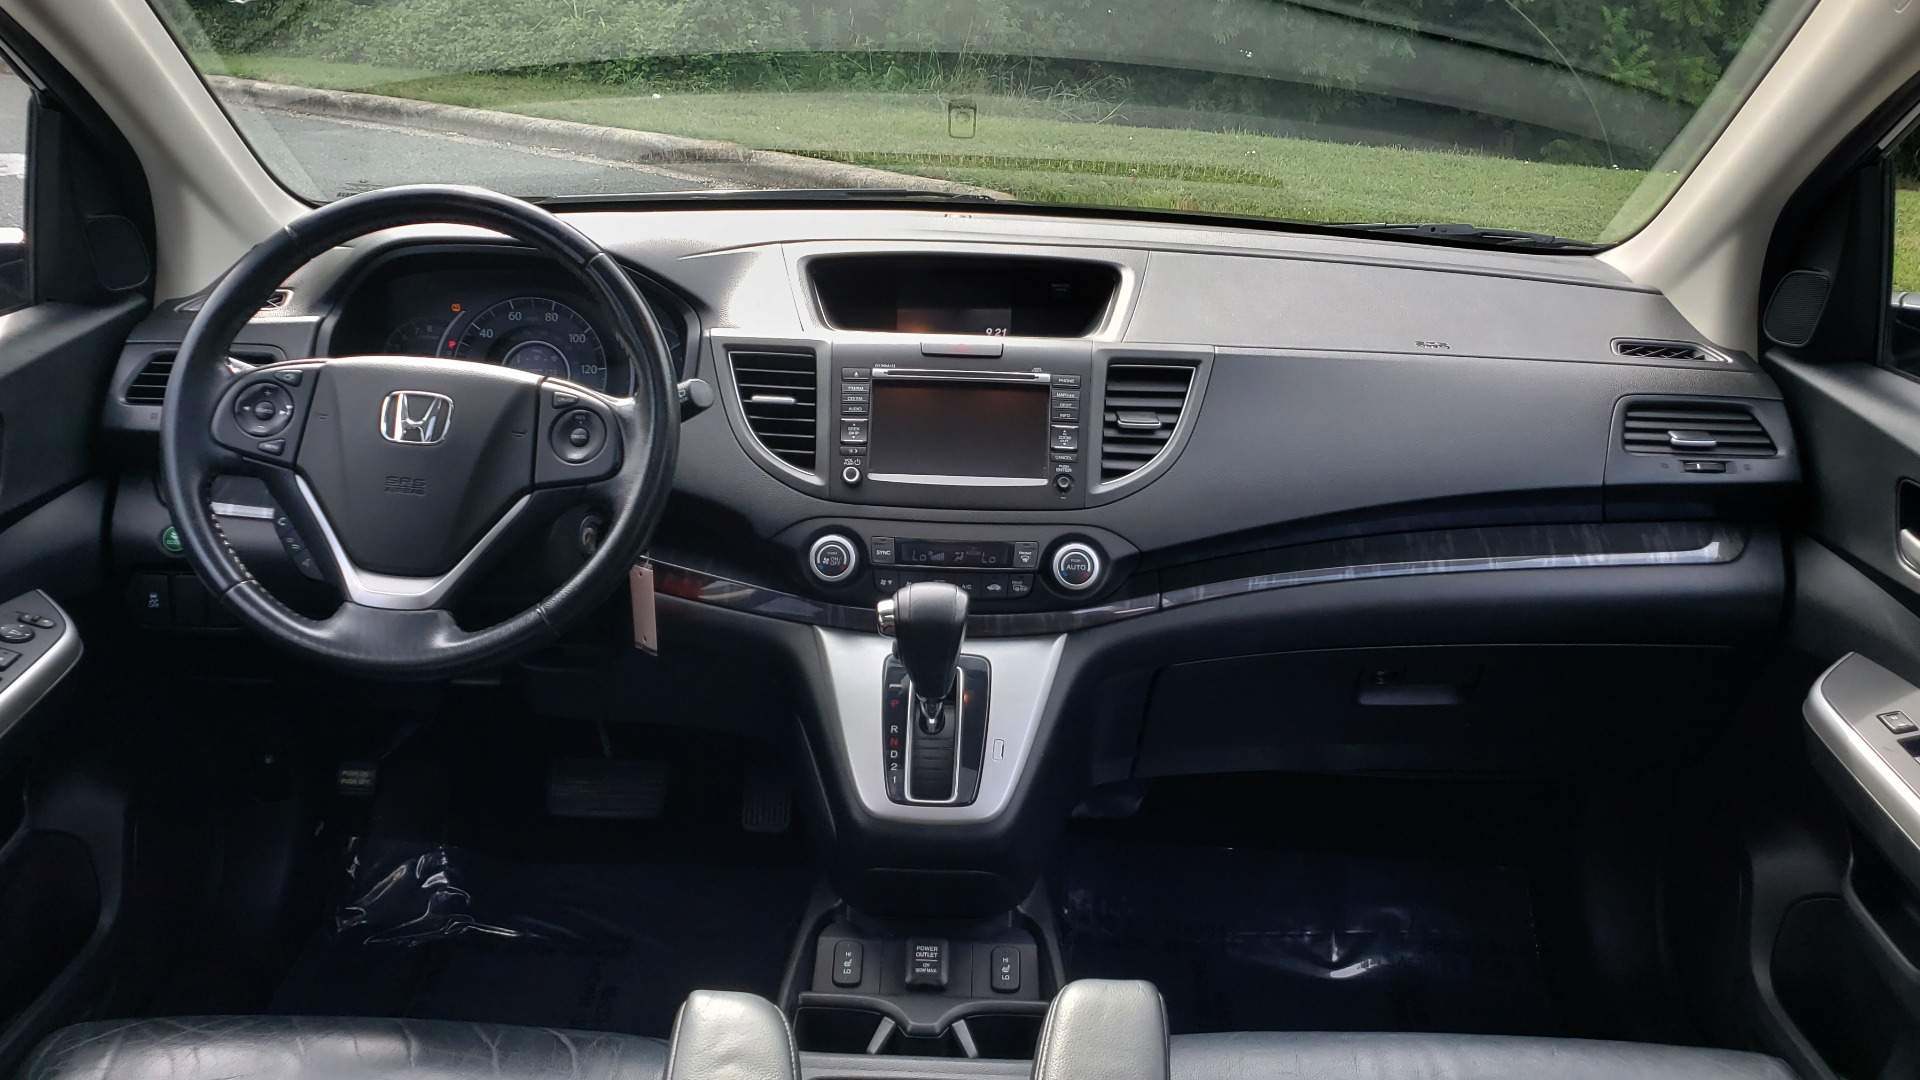 Used 2012 Honda CR-V EX-L / AWD / 5DR / SUNROOF / HEATED SEATS / REARVIEW for sale Sold at Formula Imports in Charlotte NC 28227 66